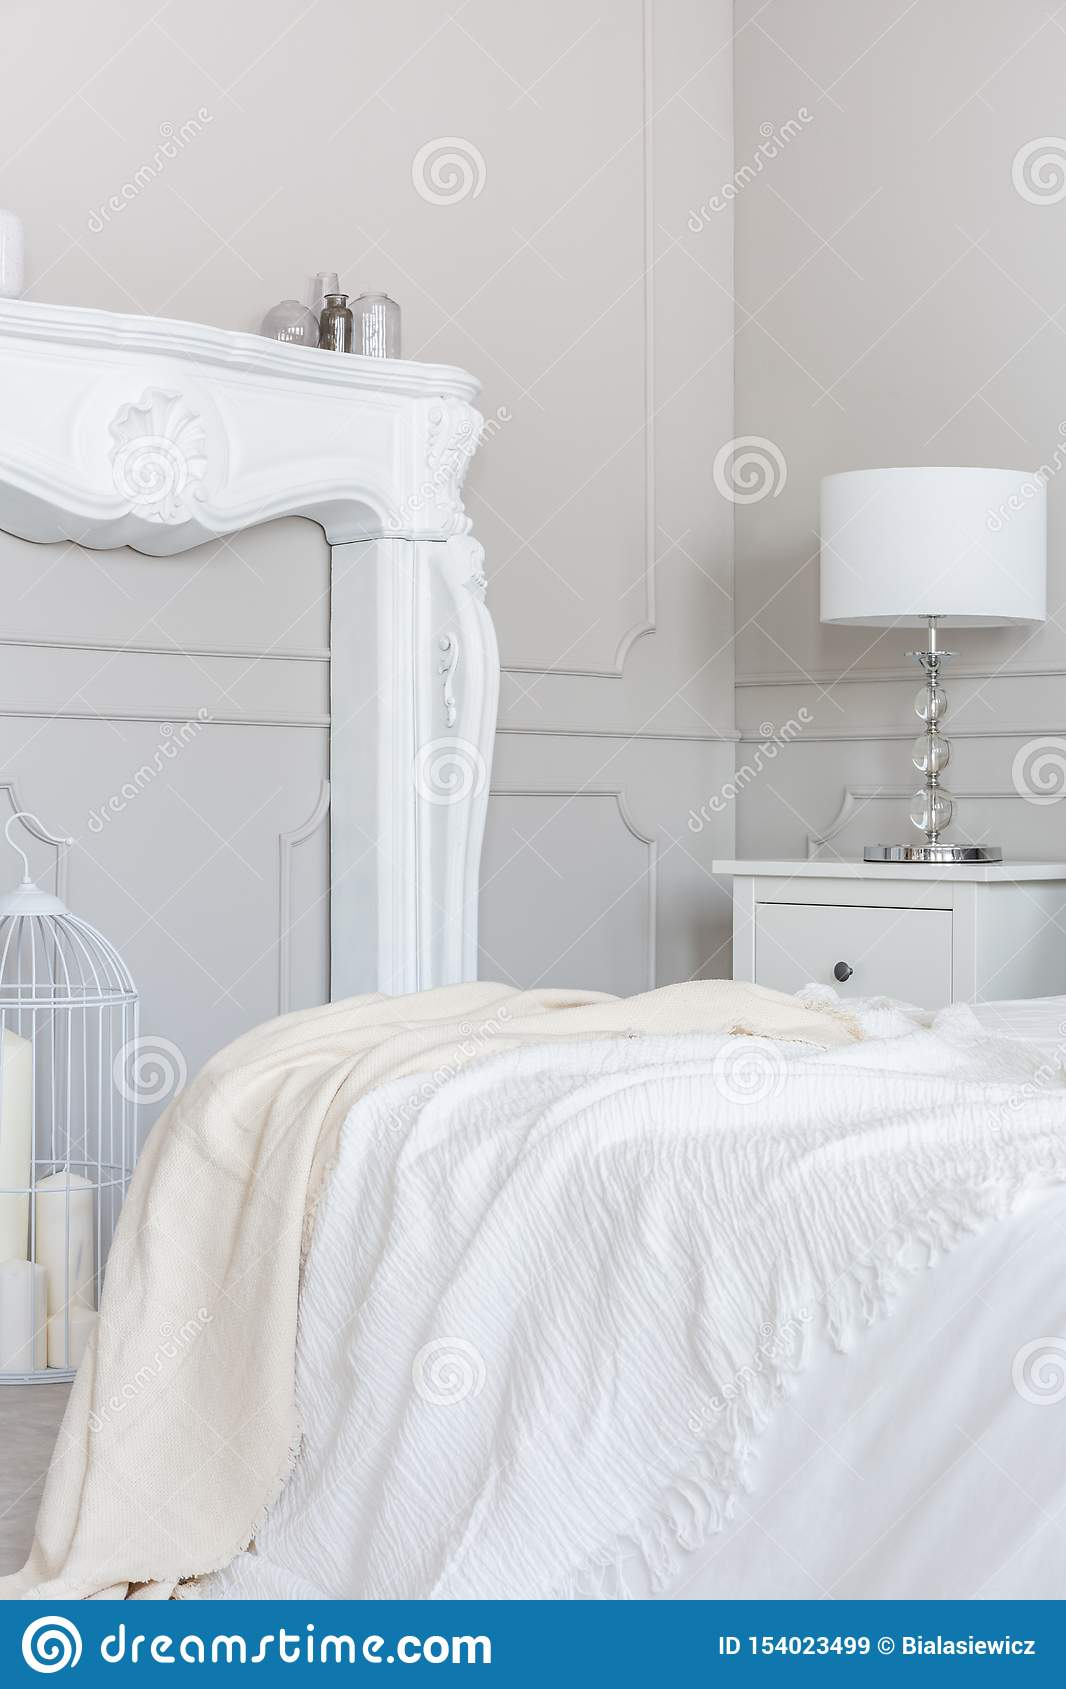 White Wooden Fireplace Portal In Beautiful Bedroom Interior With White Sheets On King Size Bed Stock Image Image Of Floor Decor 154023499